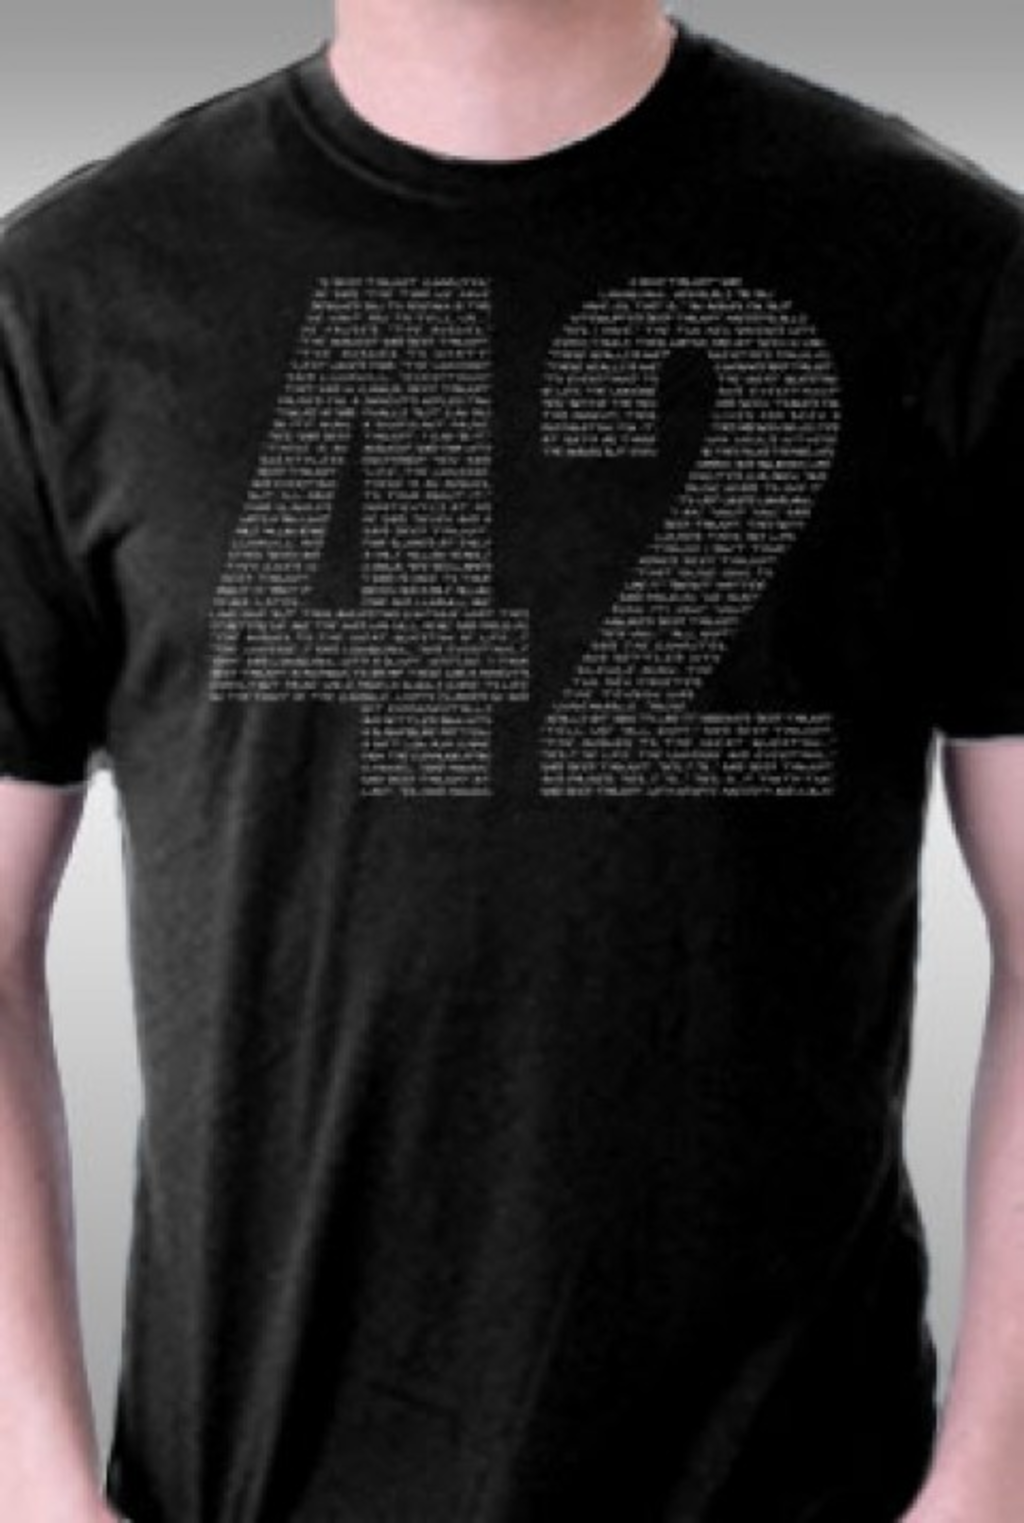 TeeFury: About 42